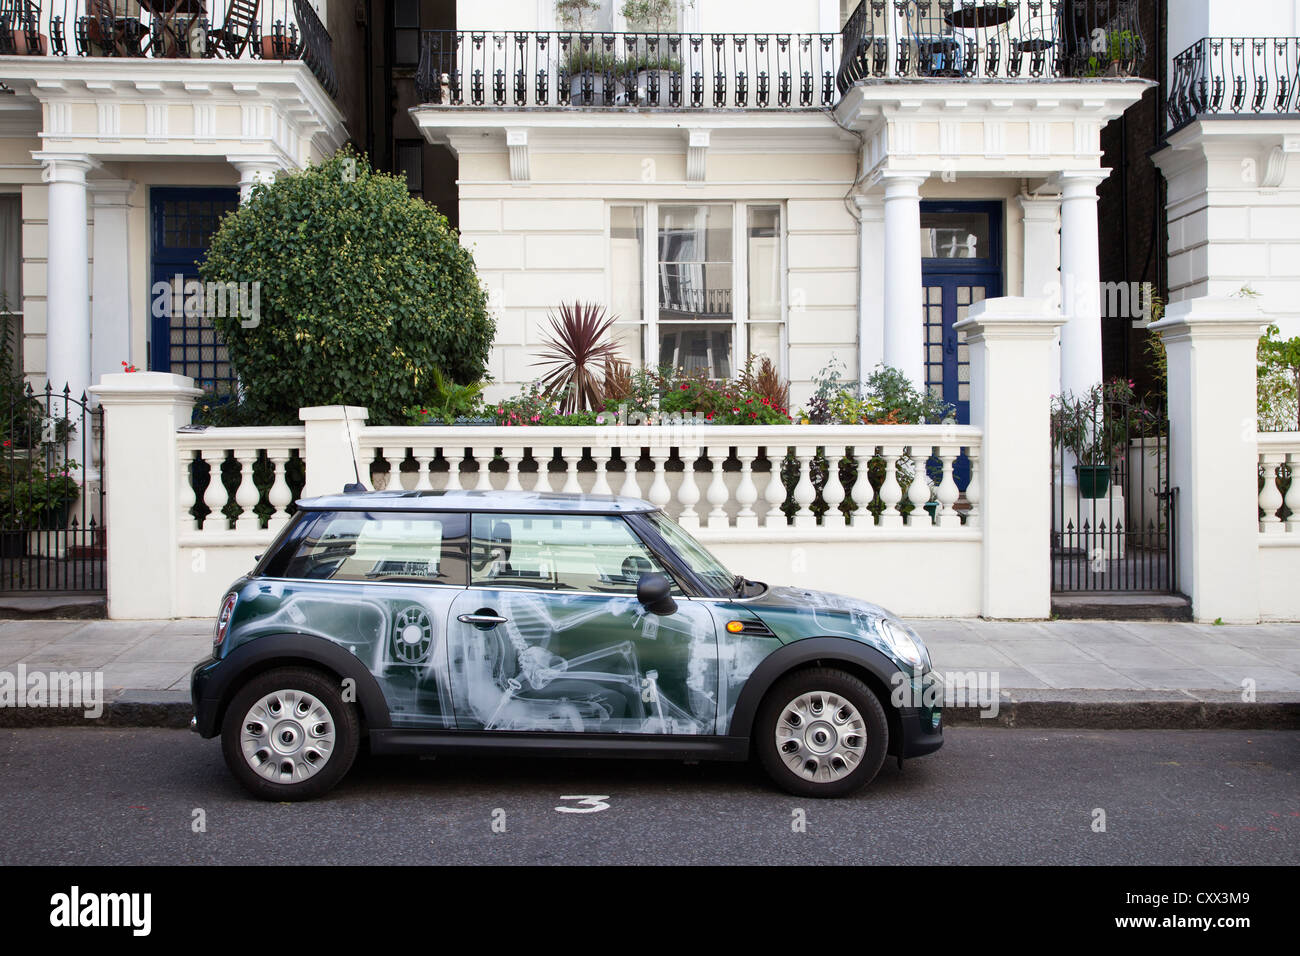 Mini car in front of London residence. - Stock Image